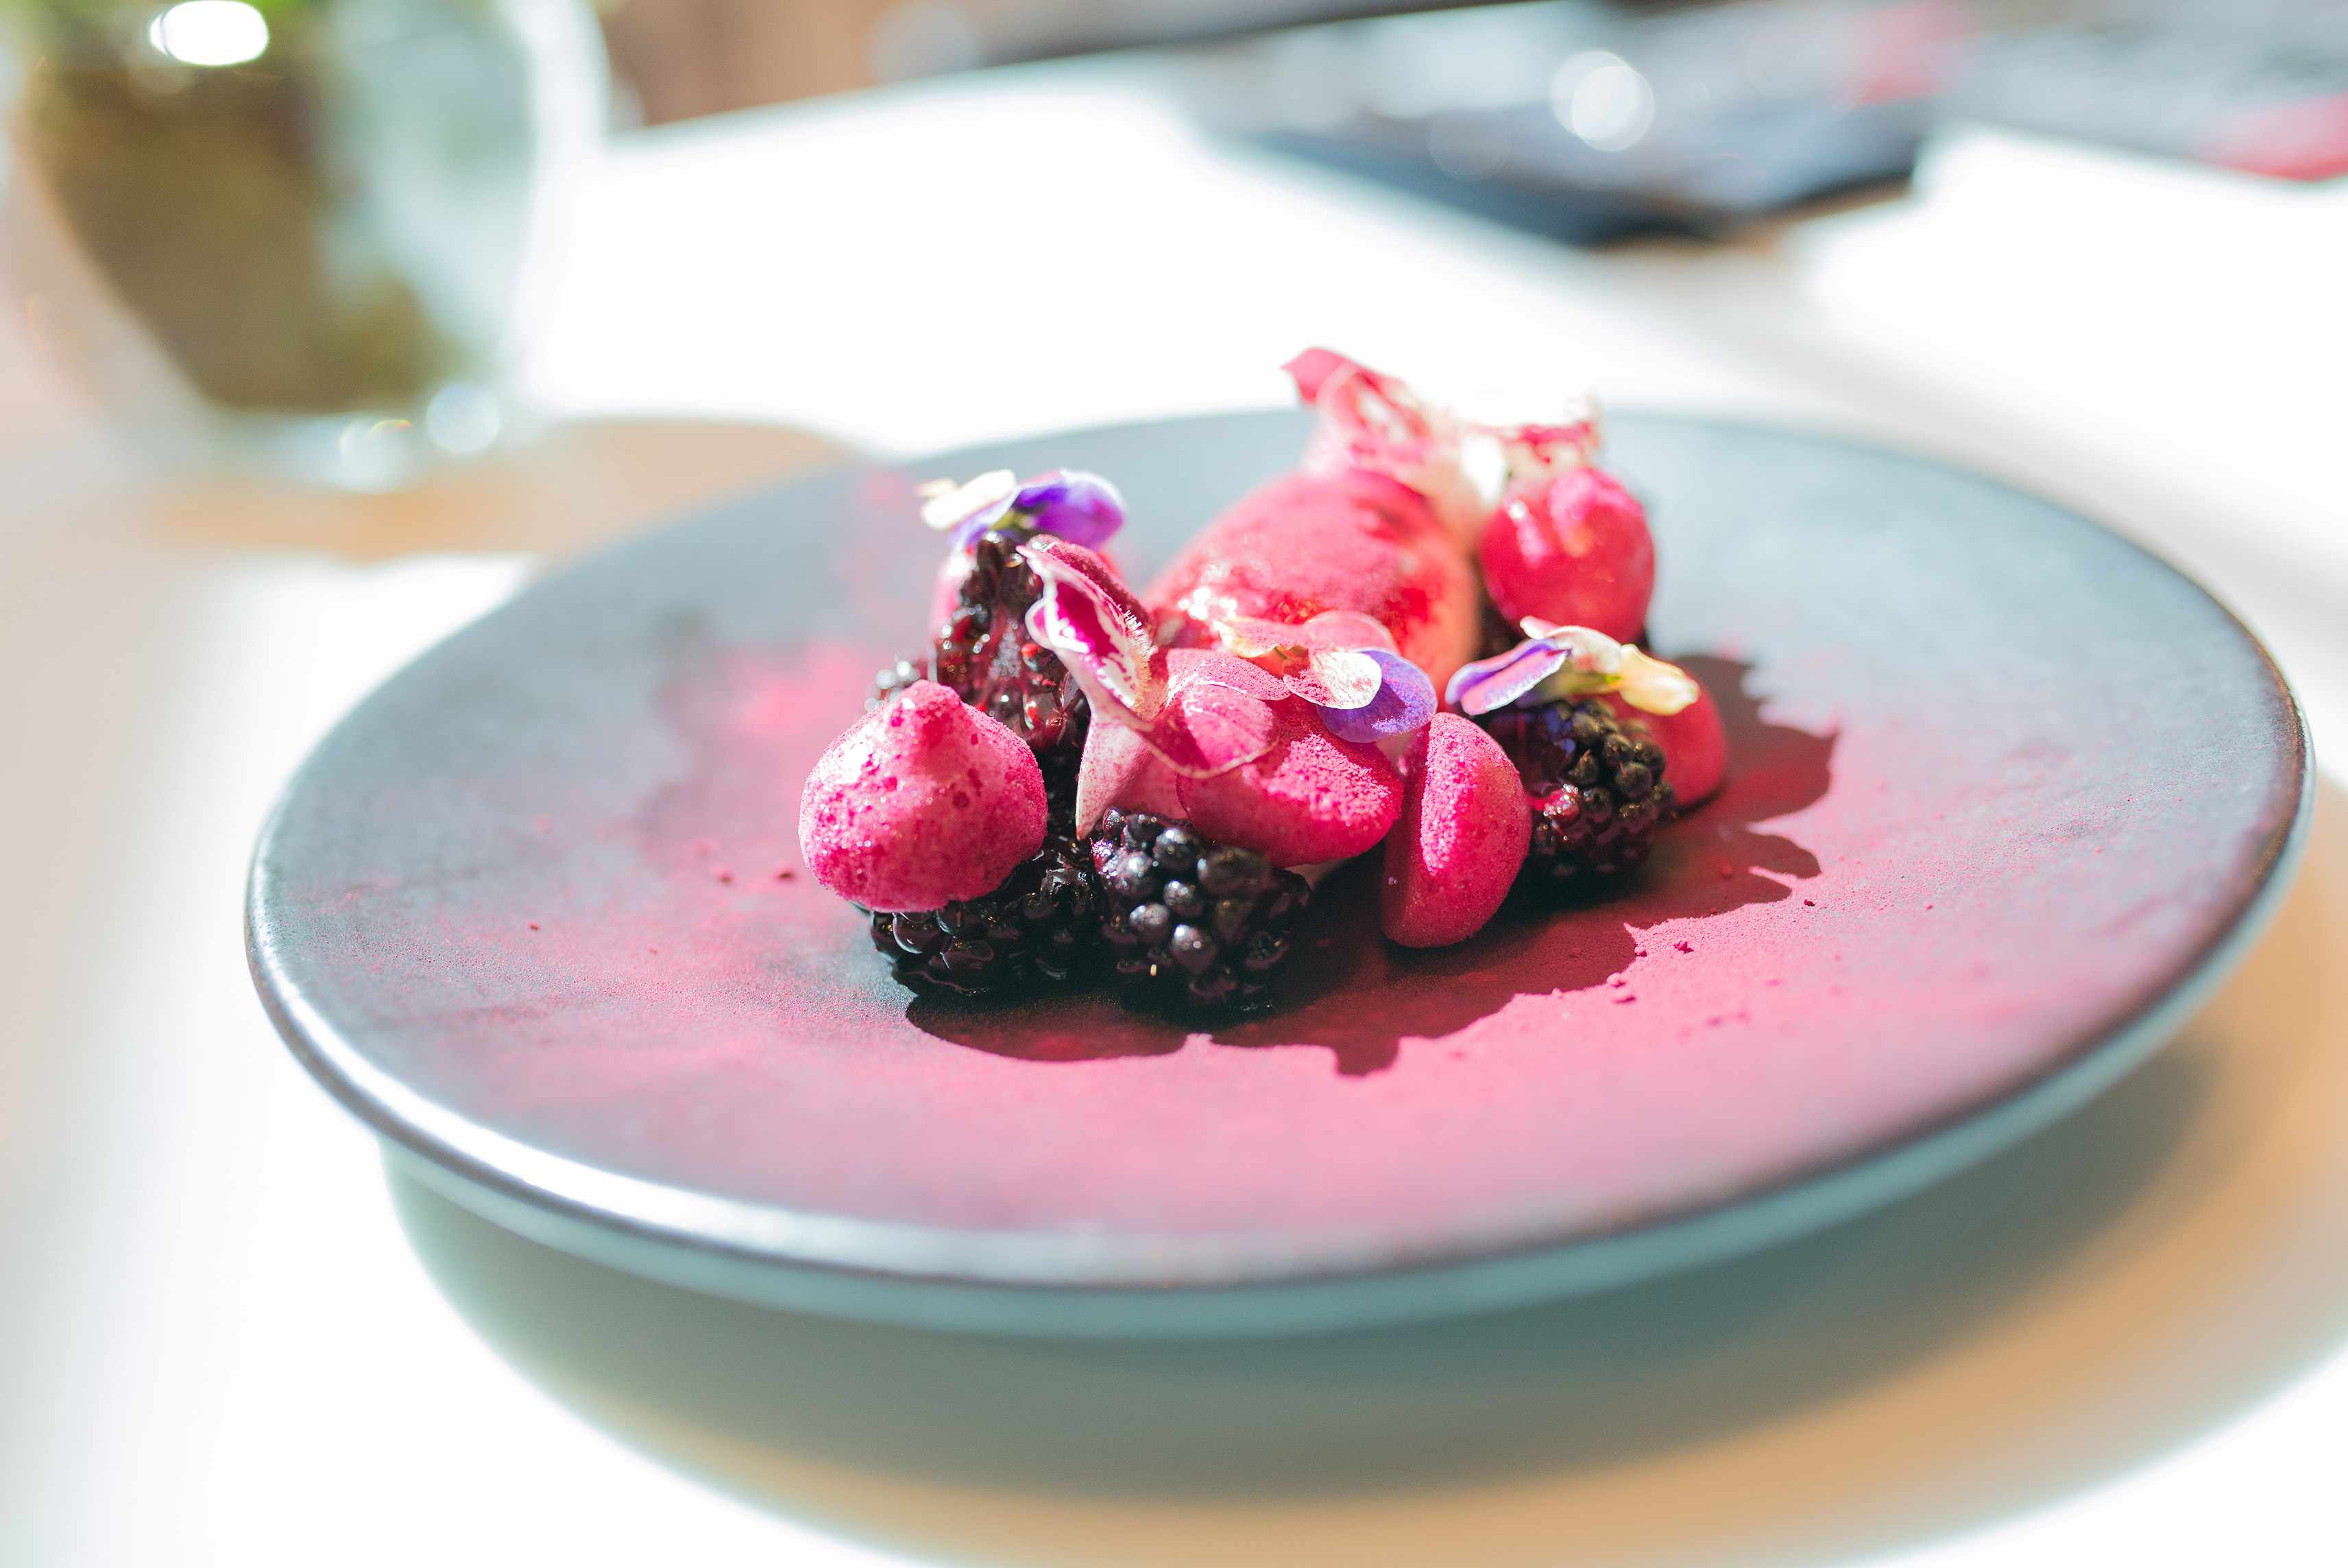 beetroot meringues and lavender-infused crème anglaise from wilderness in Birmingham